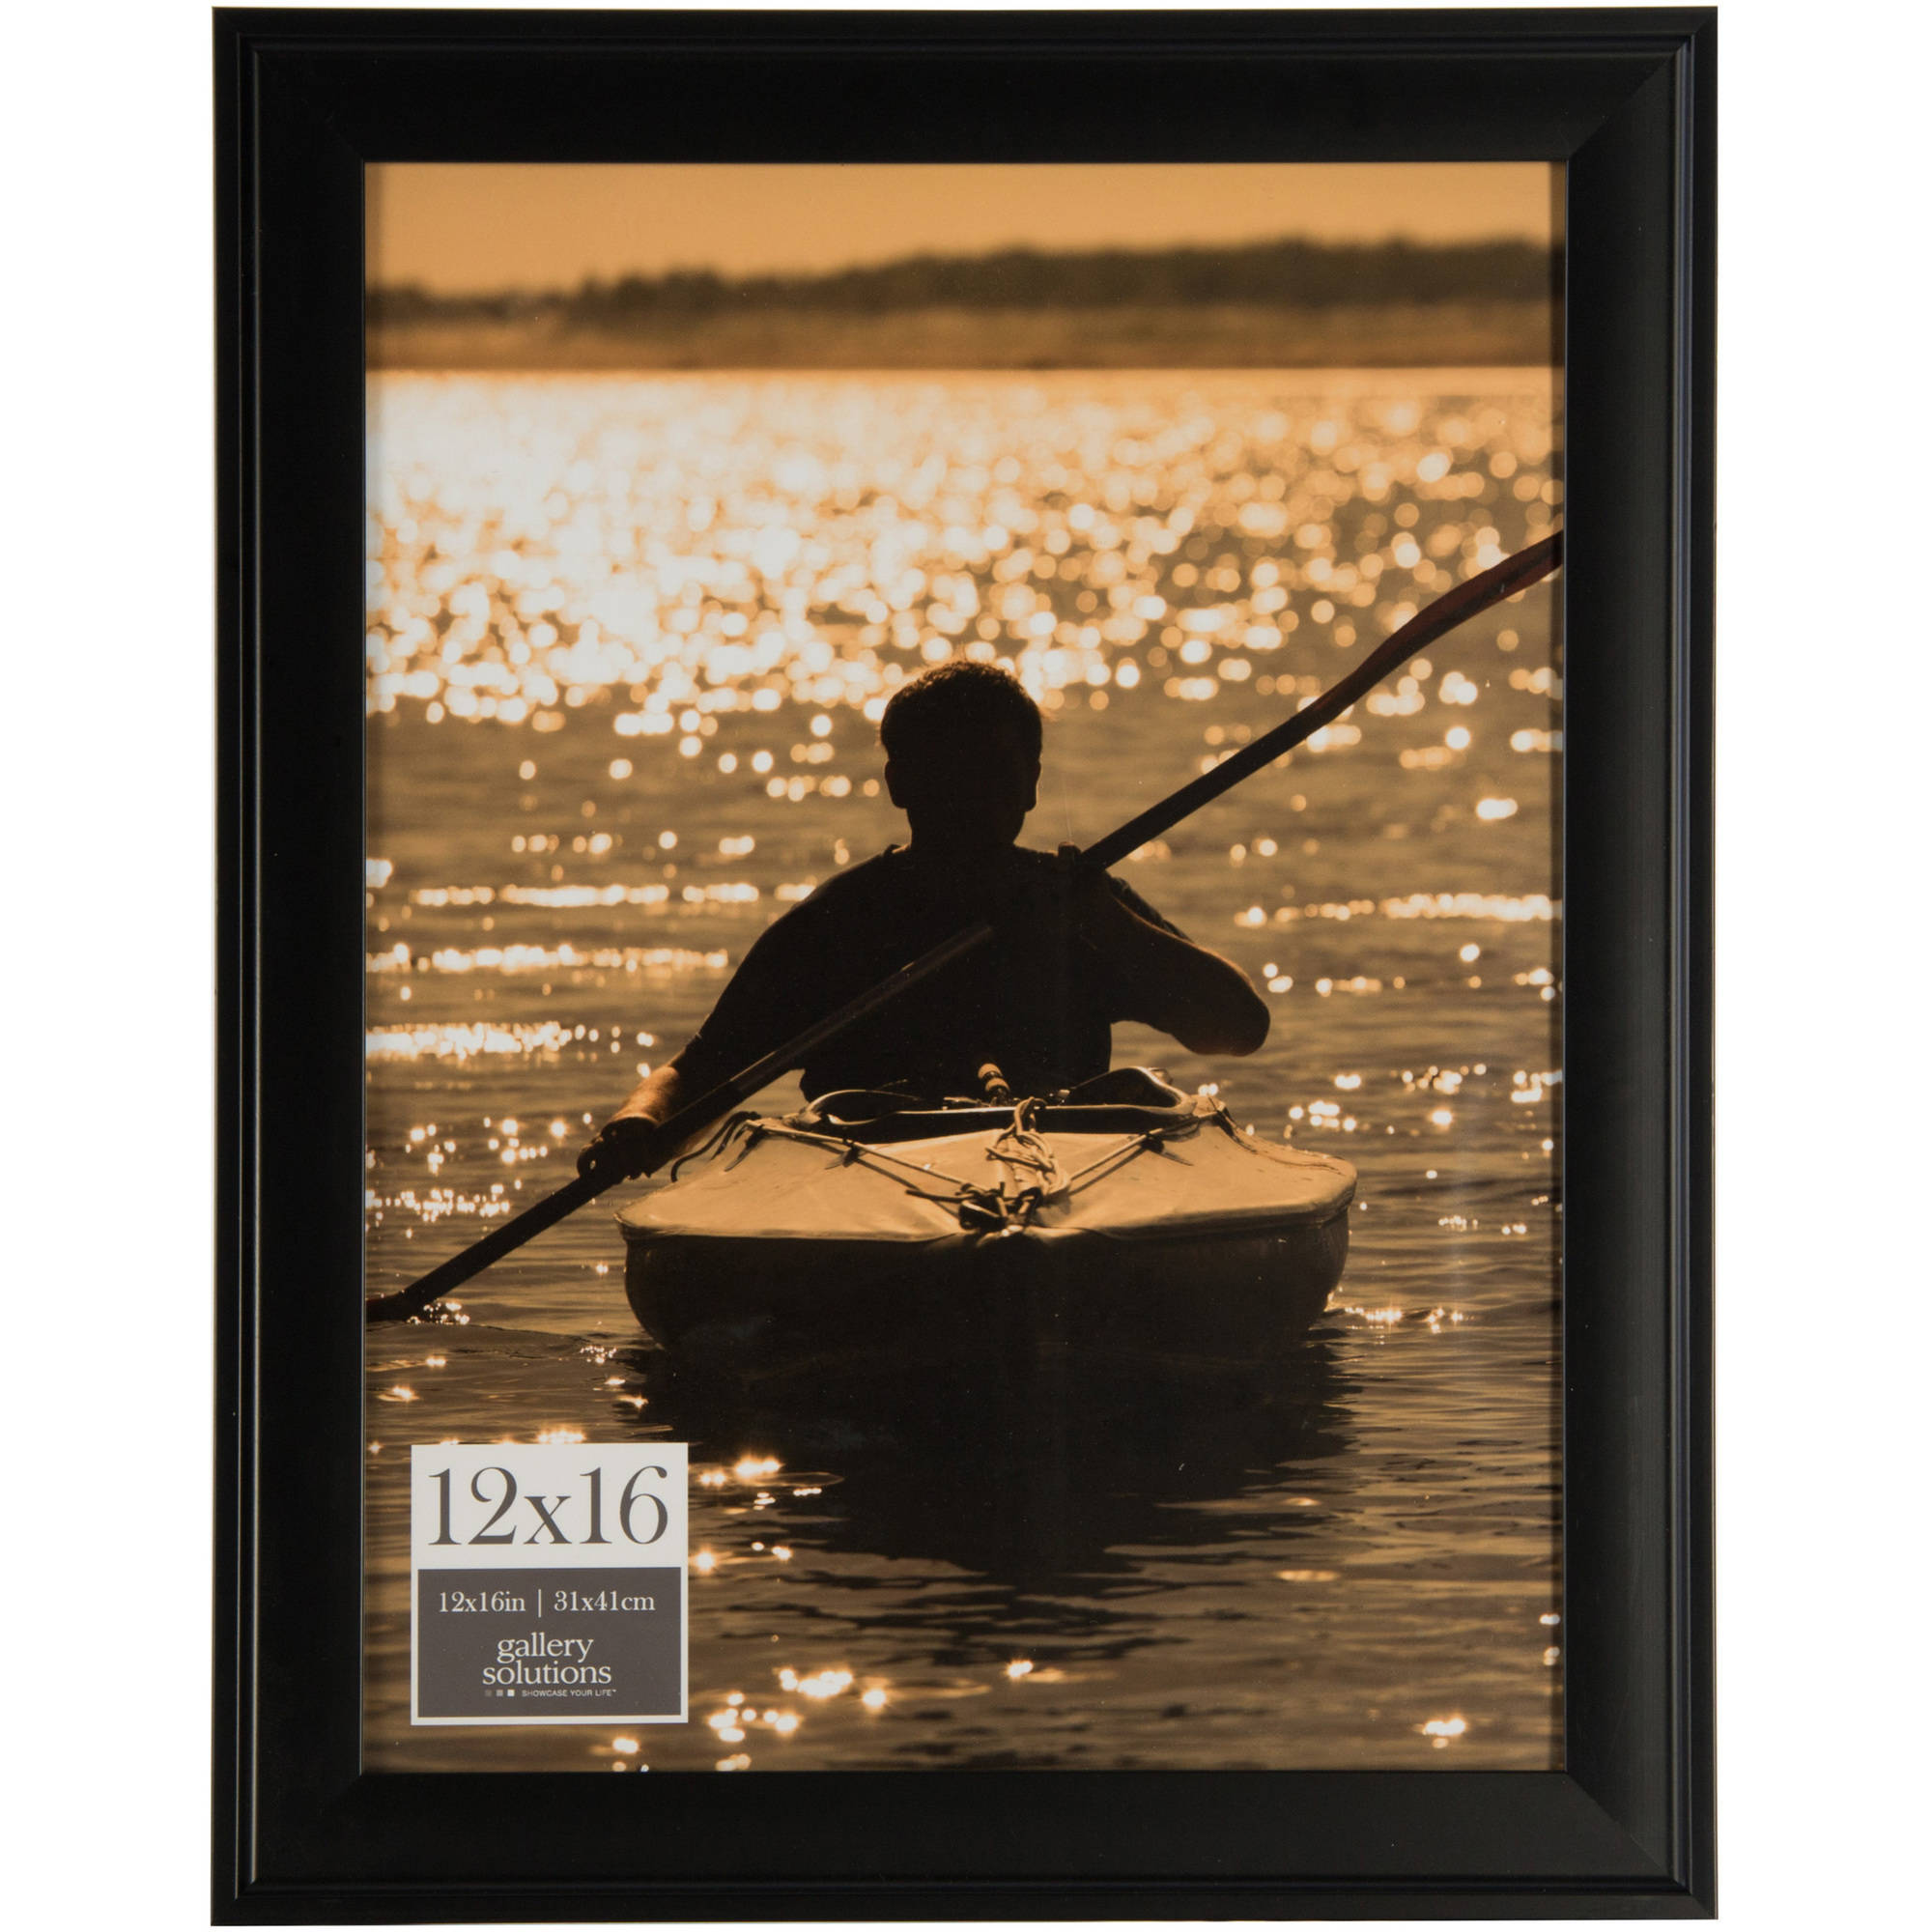 Gallery Solutions 12x16 Black Photo Frame